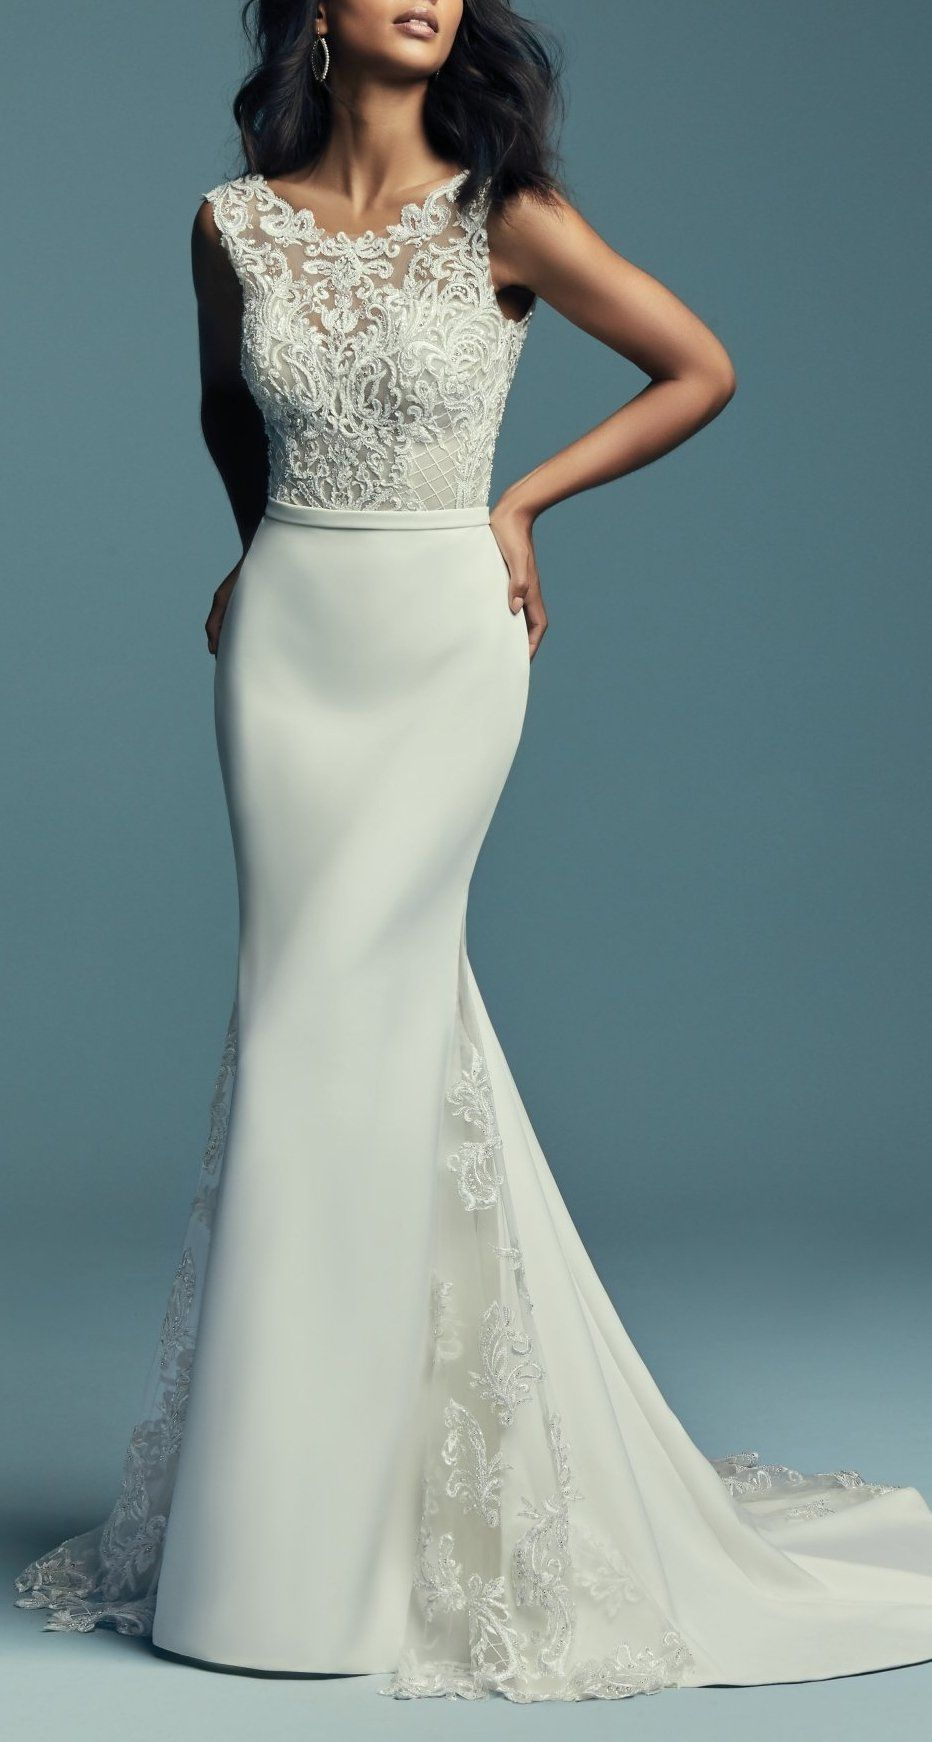 Maggie Sottero Wedding Dresses | Bateau neckline, Maggie sottero and ...